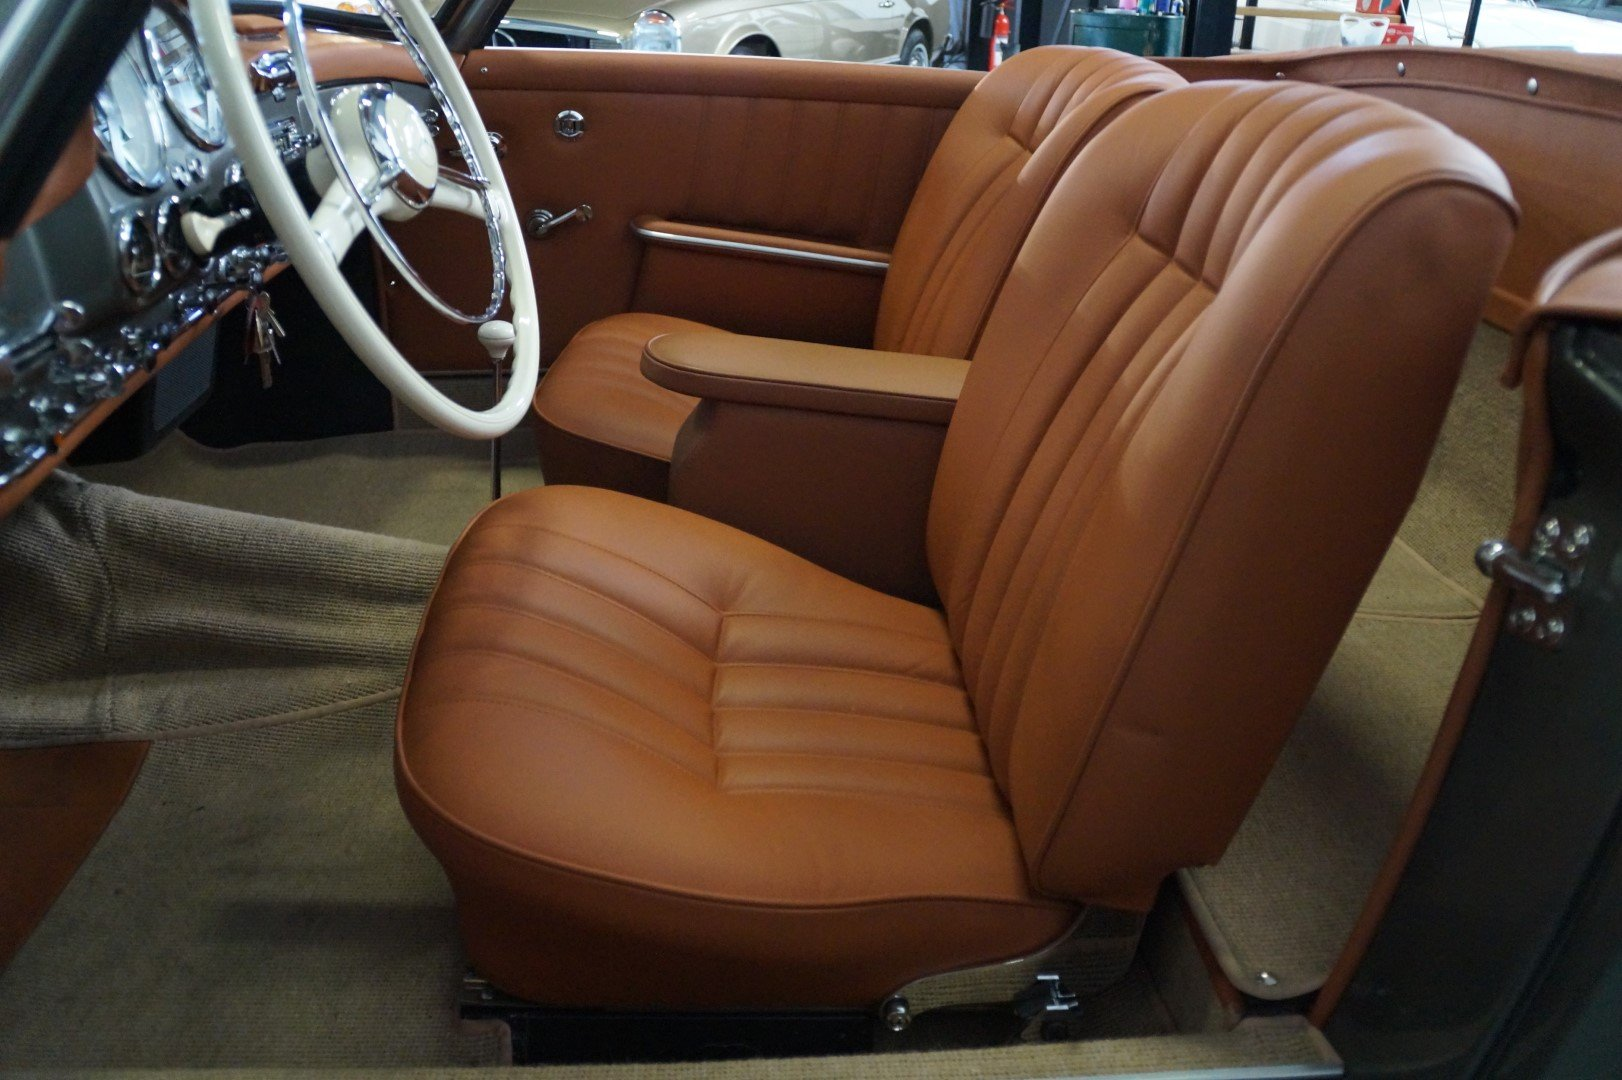 MERCEDES-BENZ 190 SL 190SL Concourse restored (1957) For Sale (picture 4 of 6)